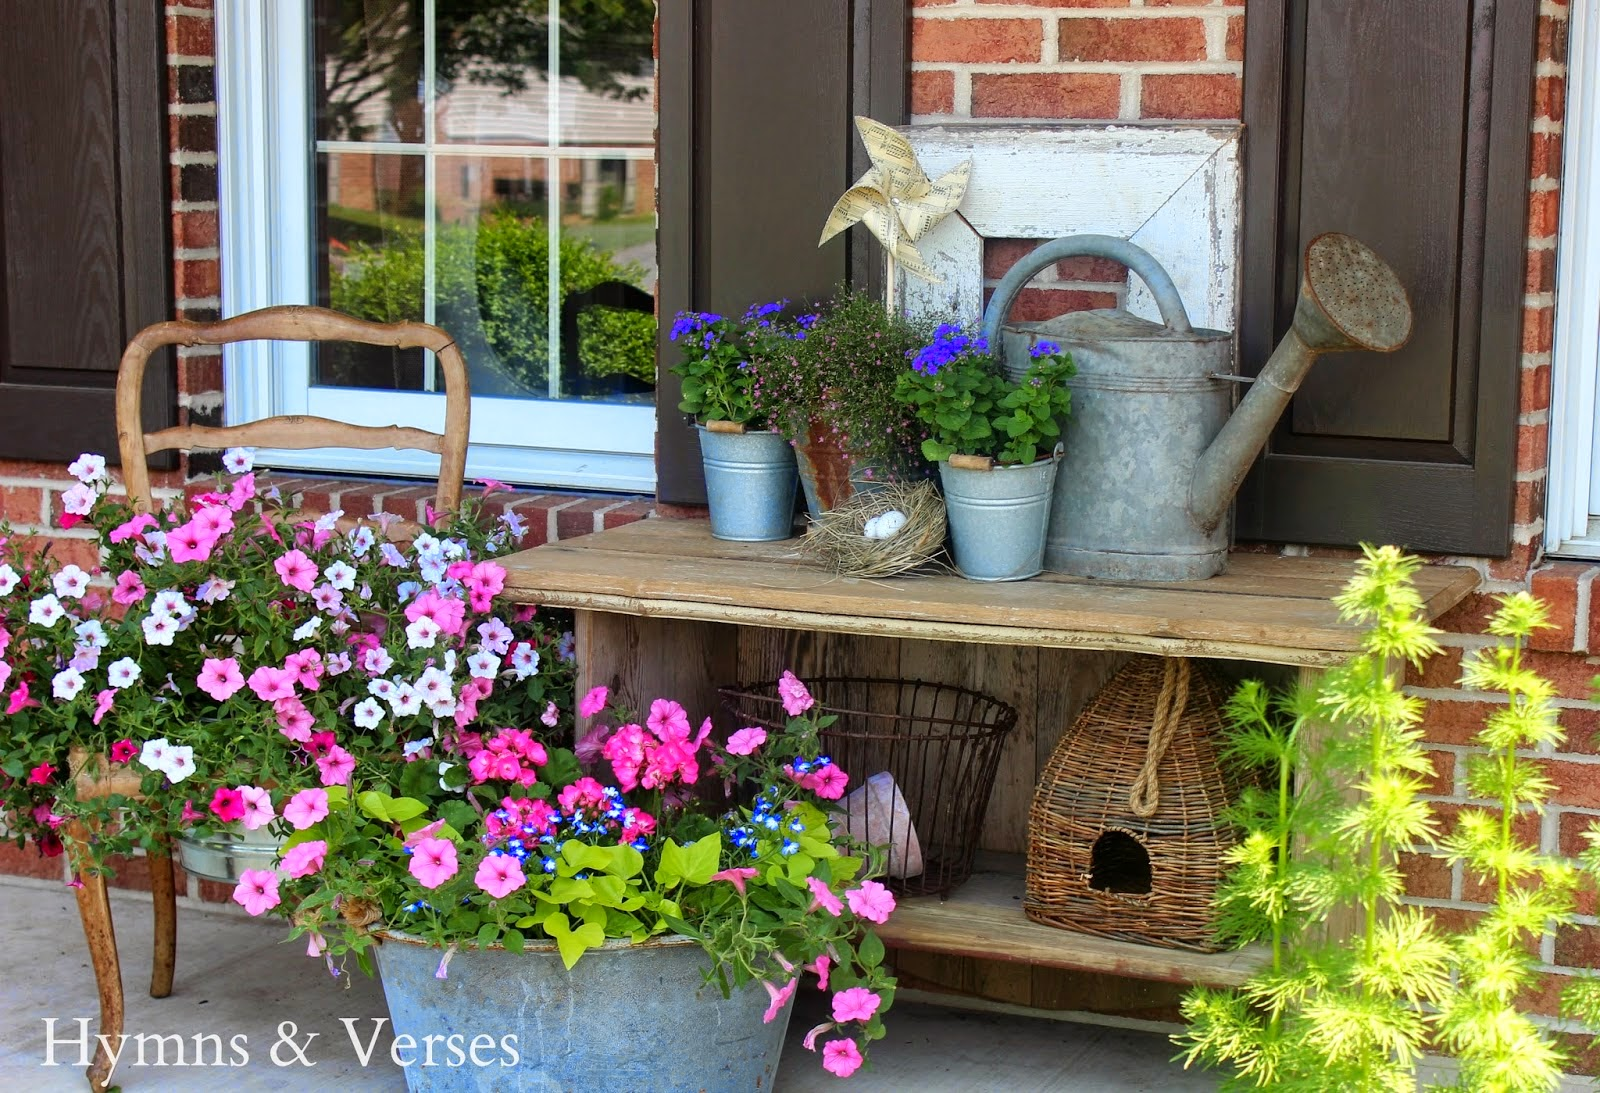 From My Front Porch To Yours- How I Found My Style Sundays- Hymns & Verses